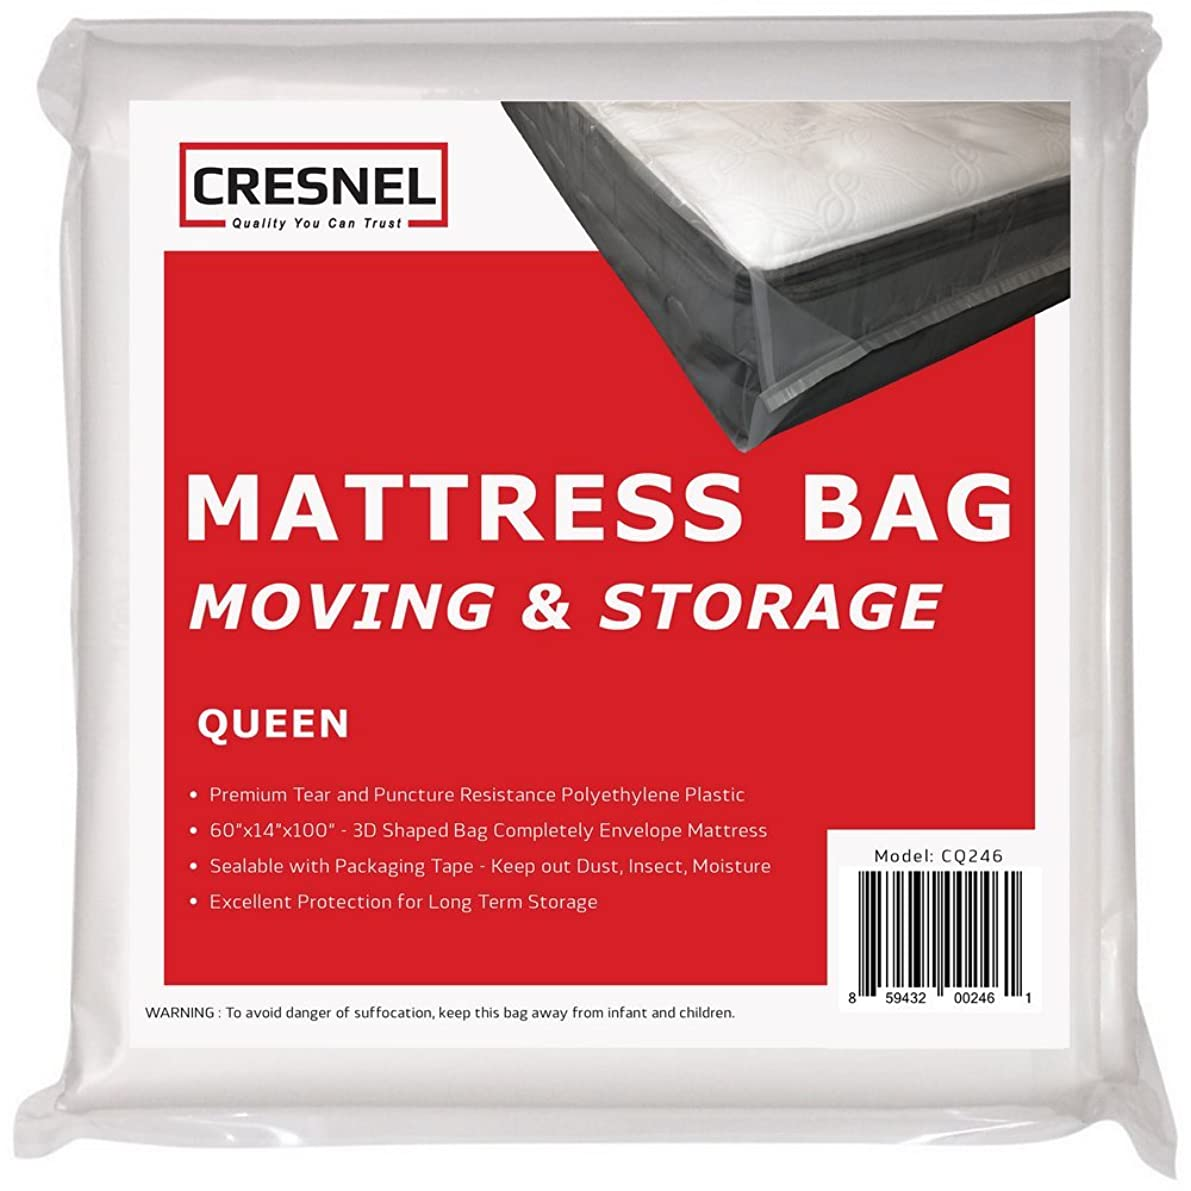 CRESNEL Mattress Bag for Moving & Long-Term Storage - Queen Size - Enhanced Mattress Protection with Super Thick Tear & Puncture Resistance Polyethylene